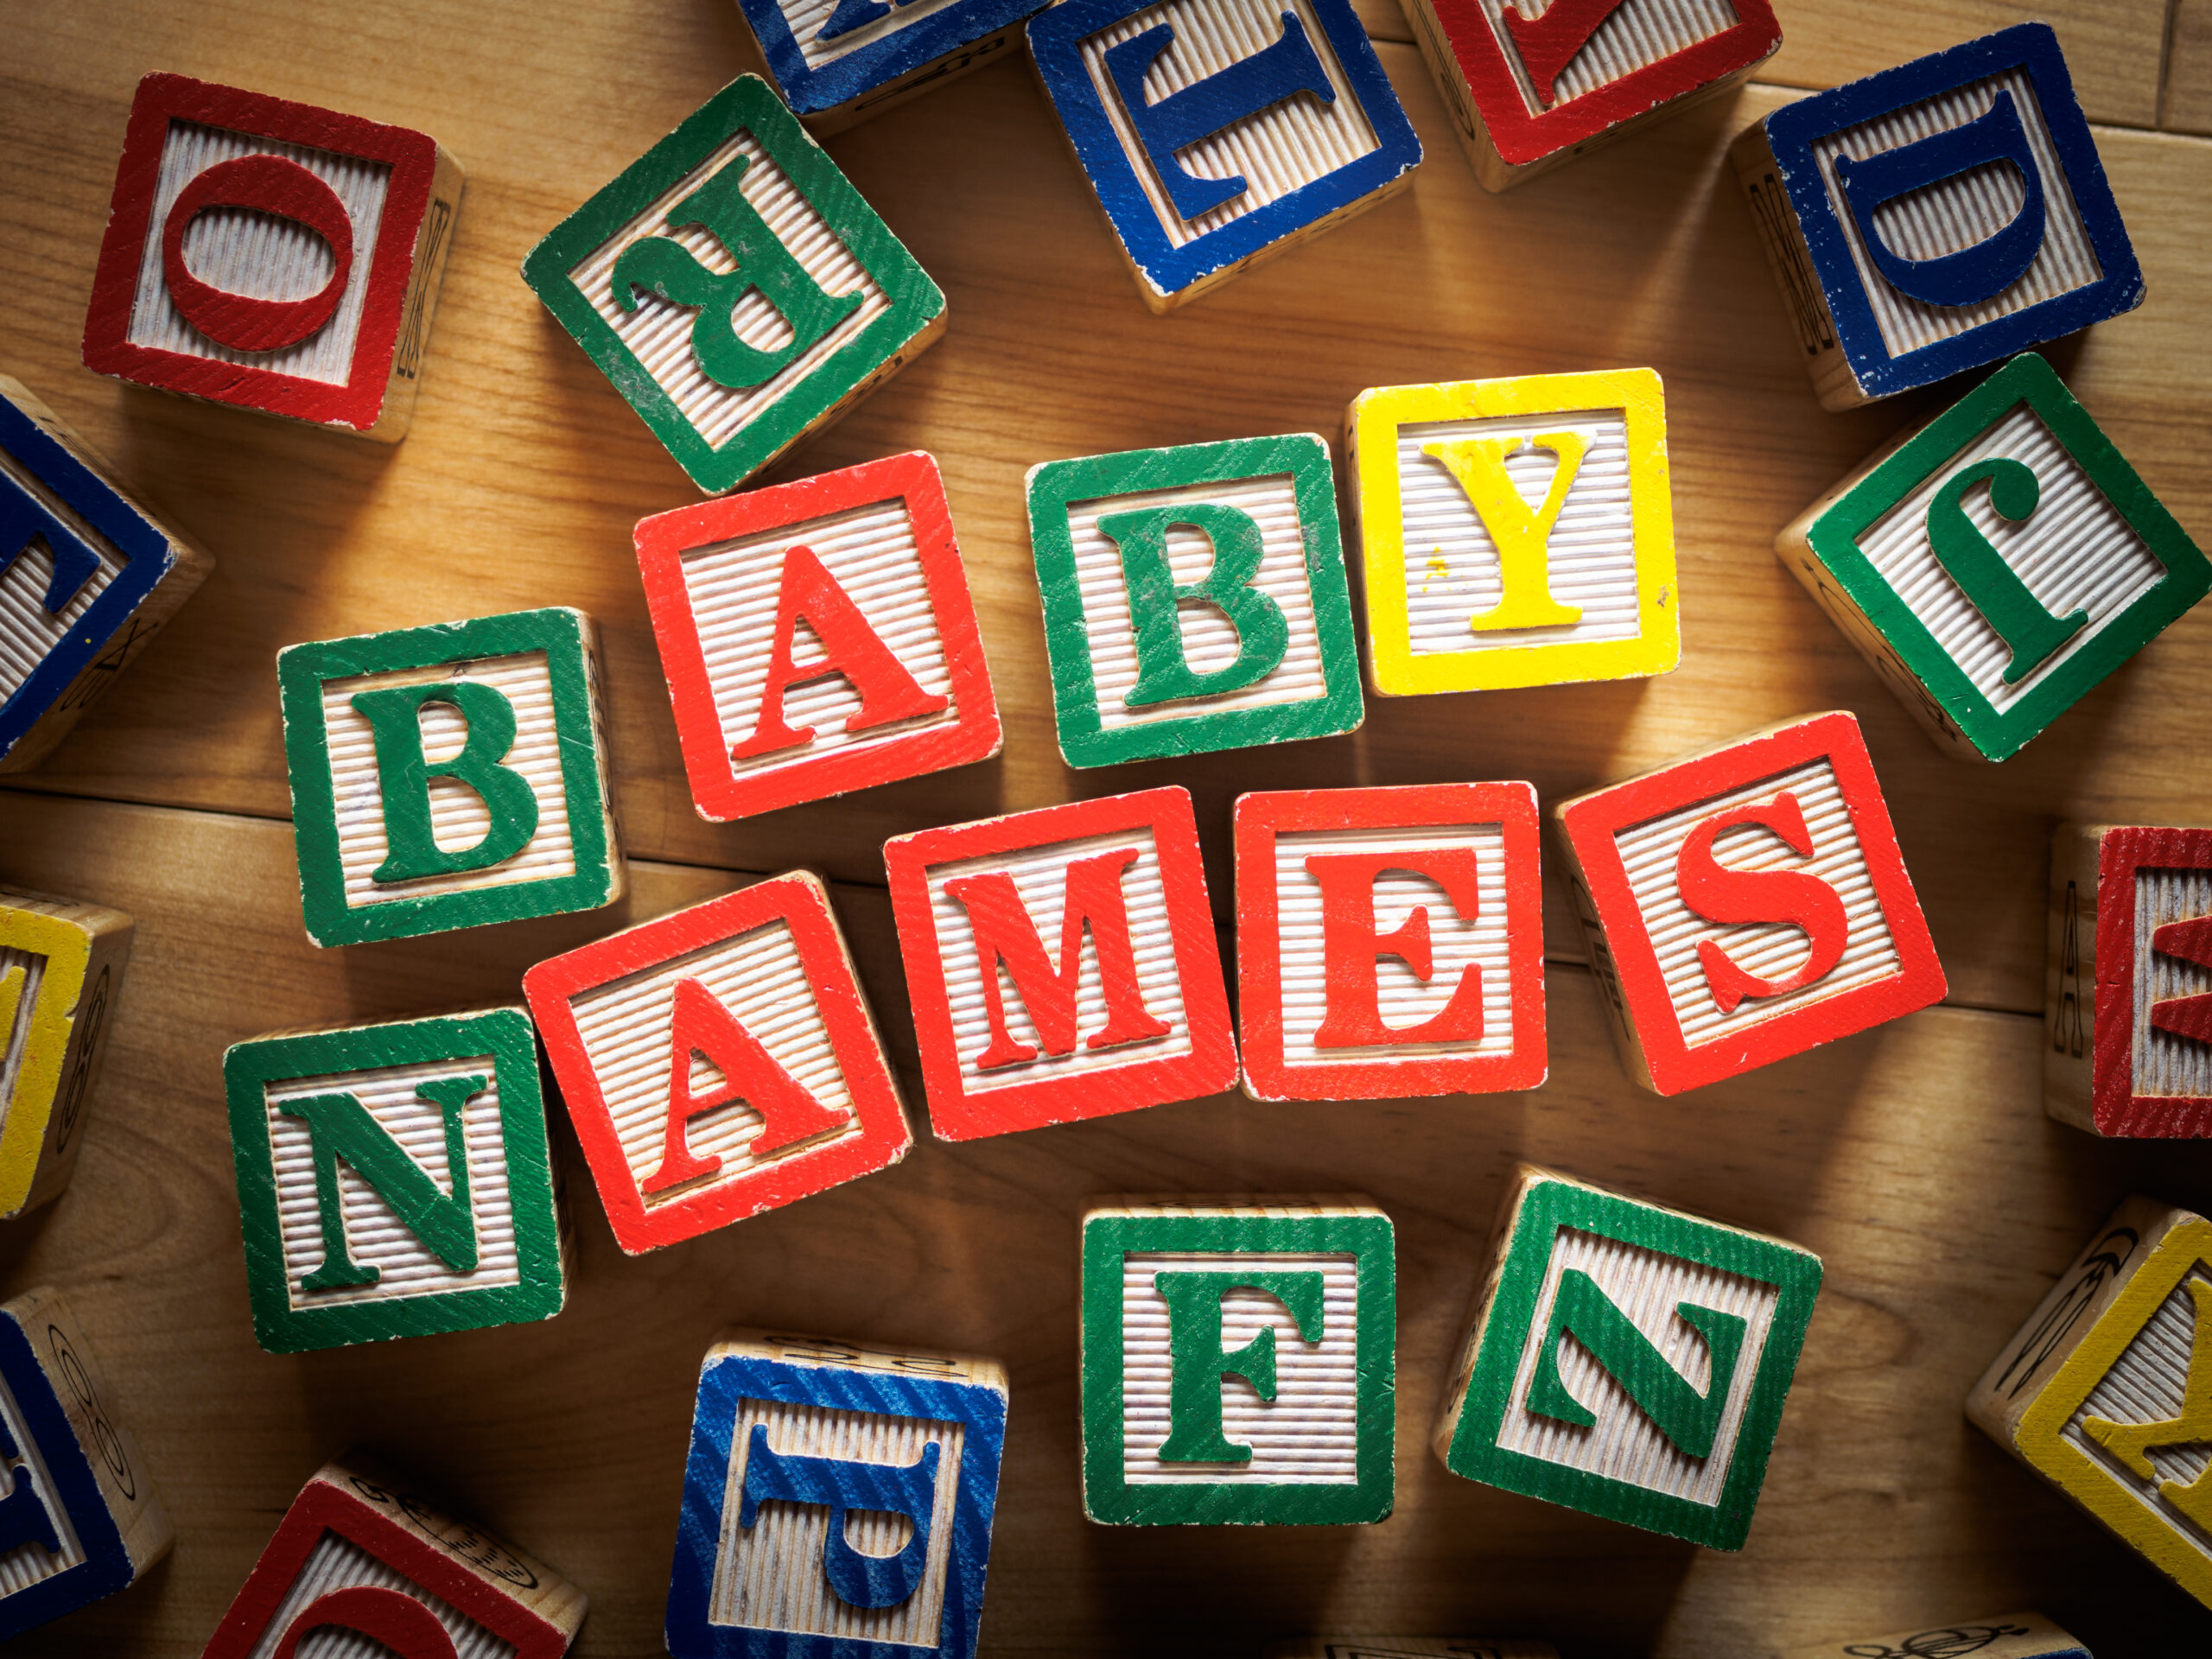 Have you ever wondered why Arabic baby names seem so much longer than Western names? Well, wonder no more as today we explain how Arabs get their names.